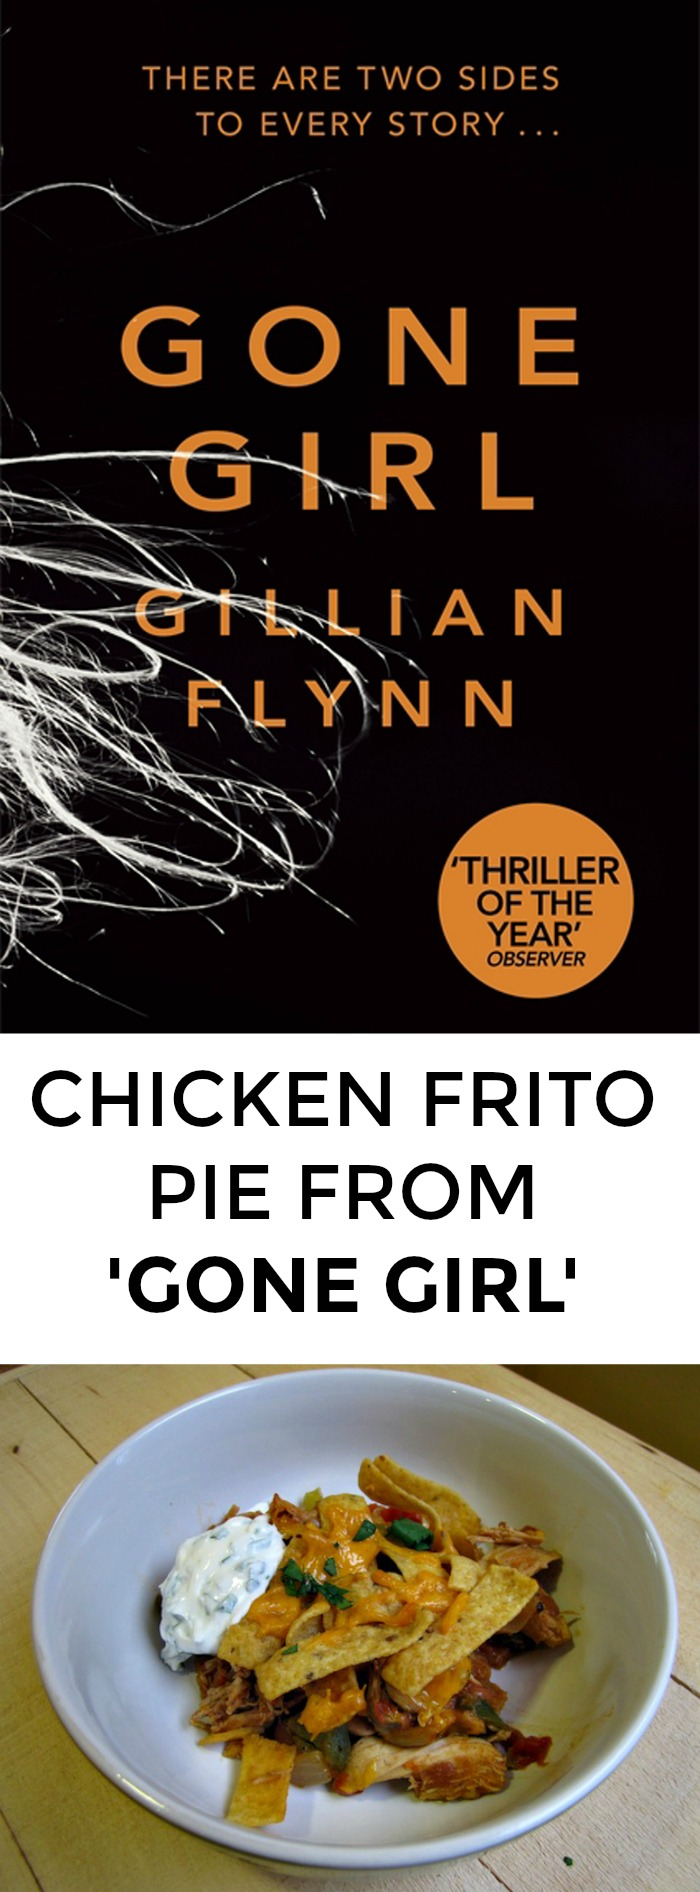 Looking for a recipe from Gone Girl? Want to win book club? Look no further than this yummy, easy recipe for chicken Frito pie!